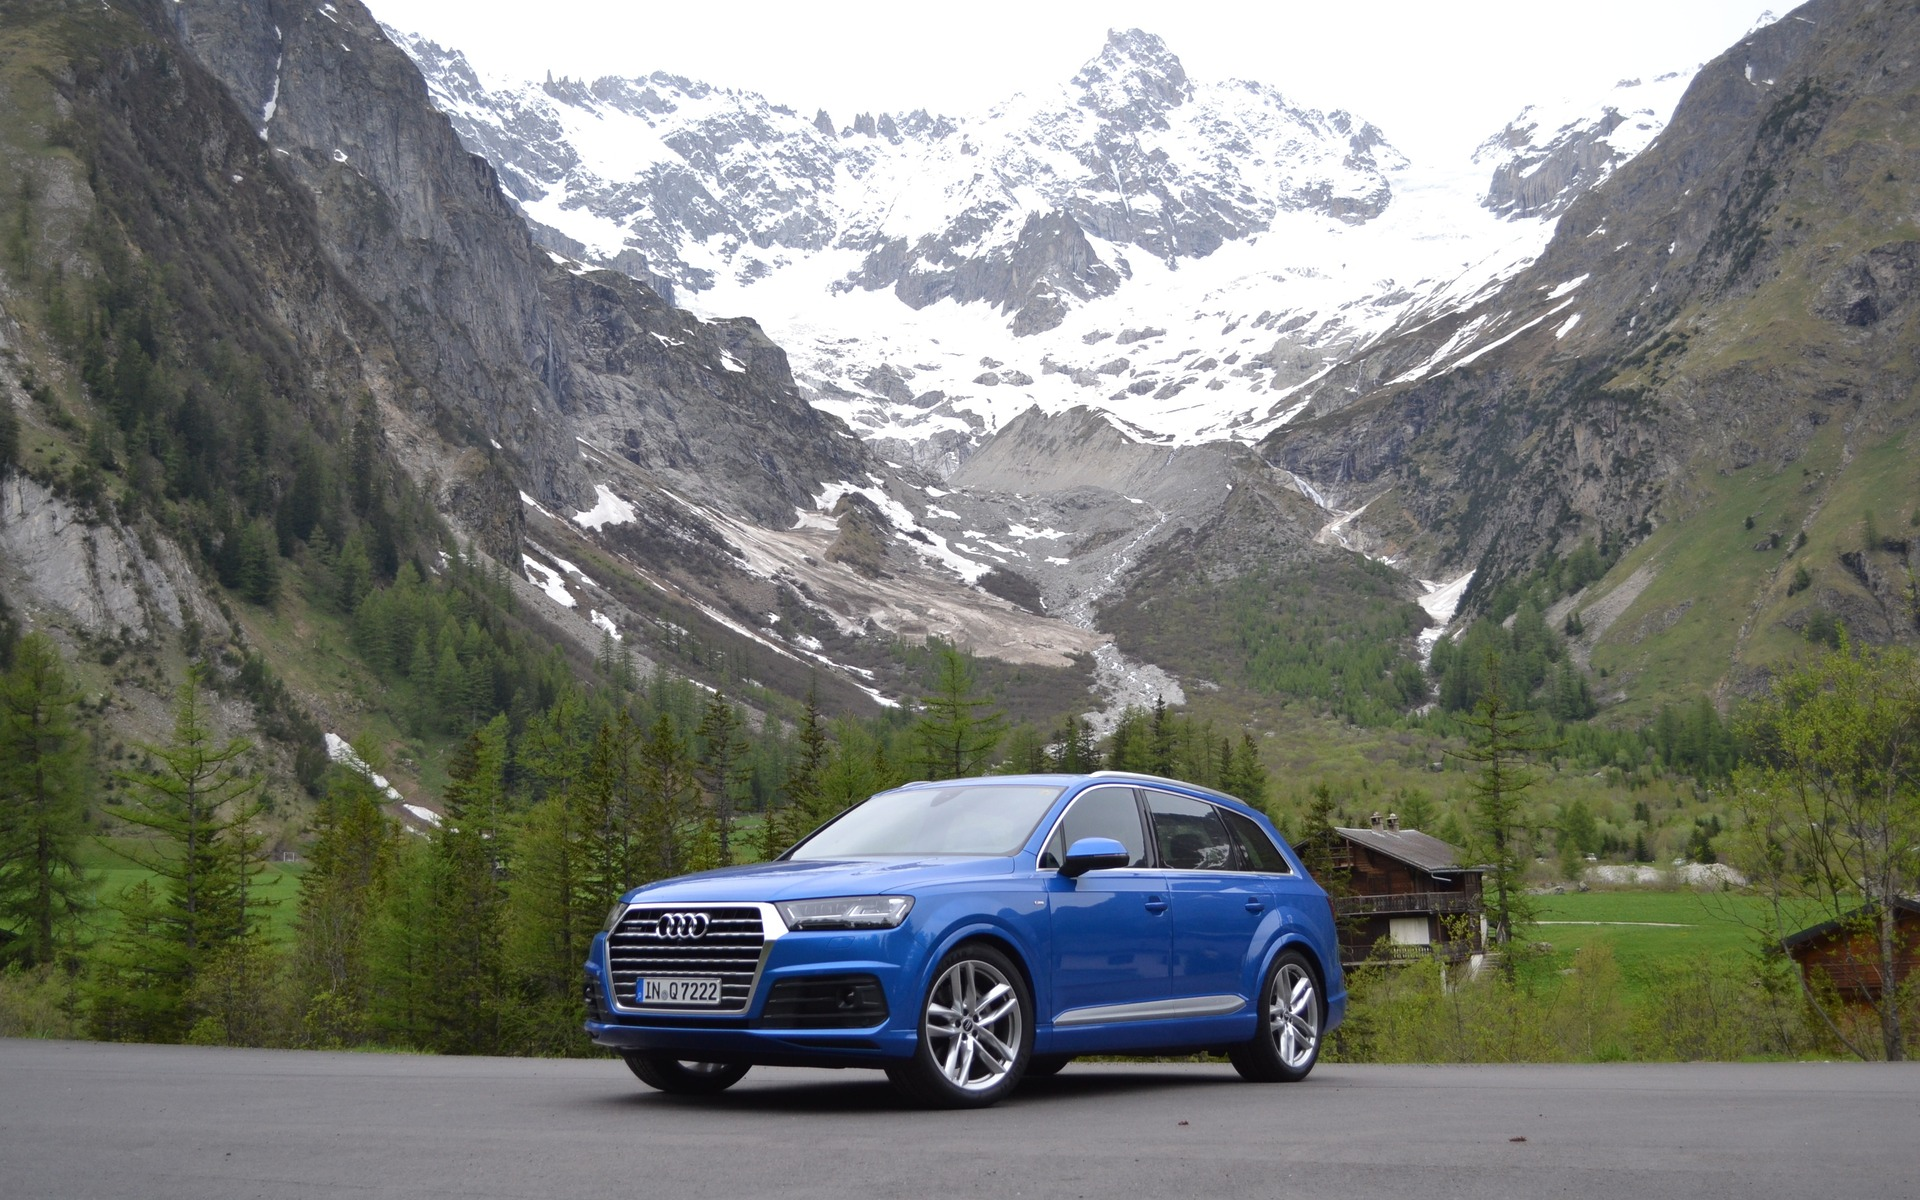 The second-generation Q7 is being released for 2016.